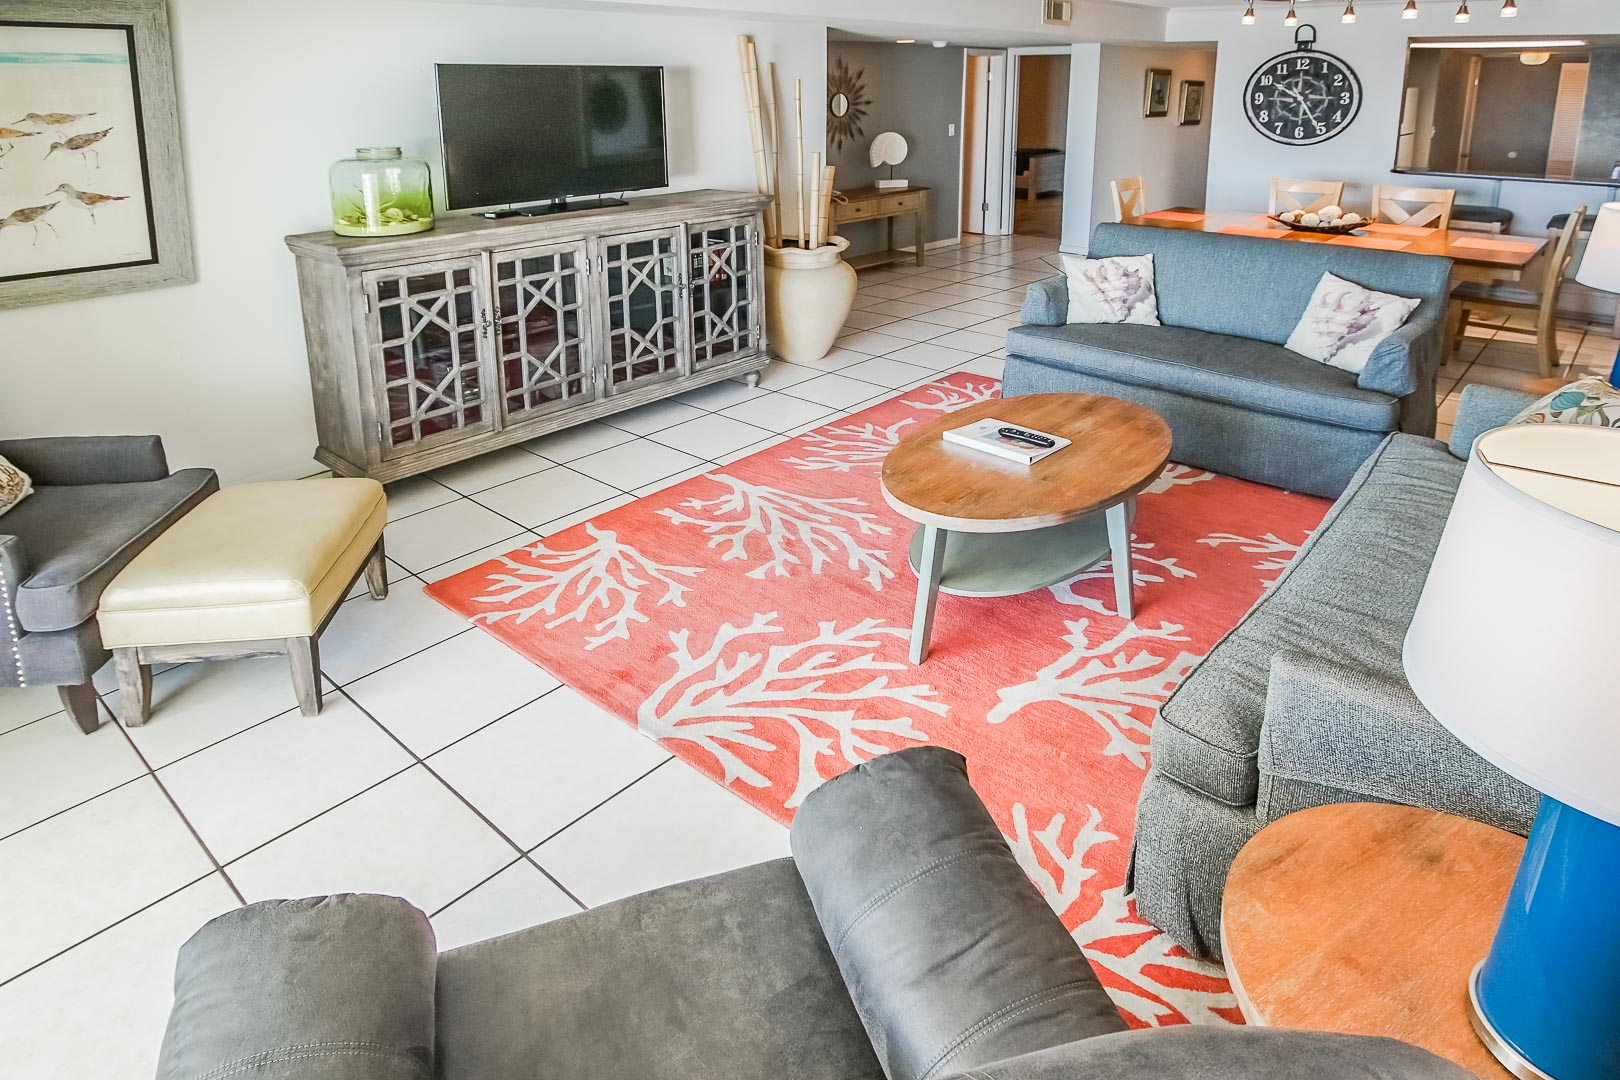 A spacious living room area at VRI's Shoreline Towers in Gulf Shores, Alabama.